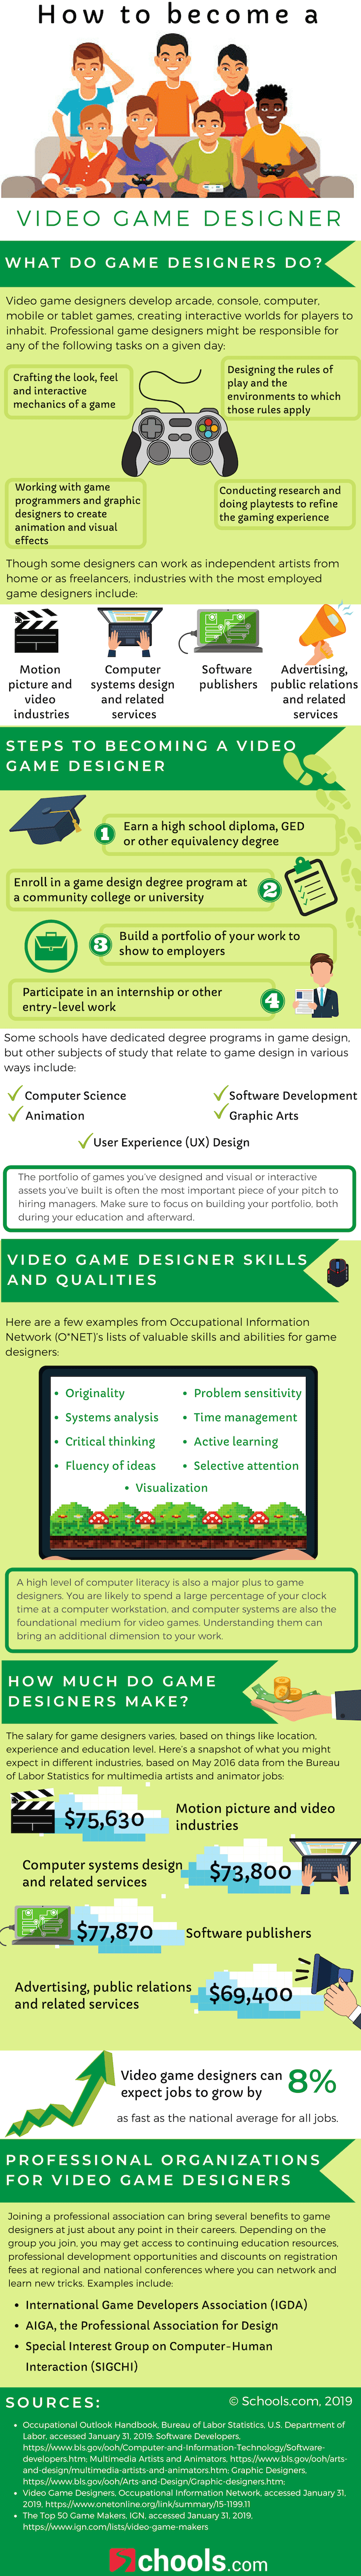 step-by-step visual guide of how to become a video game designer